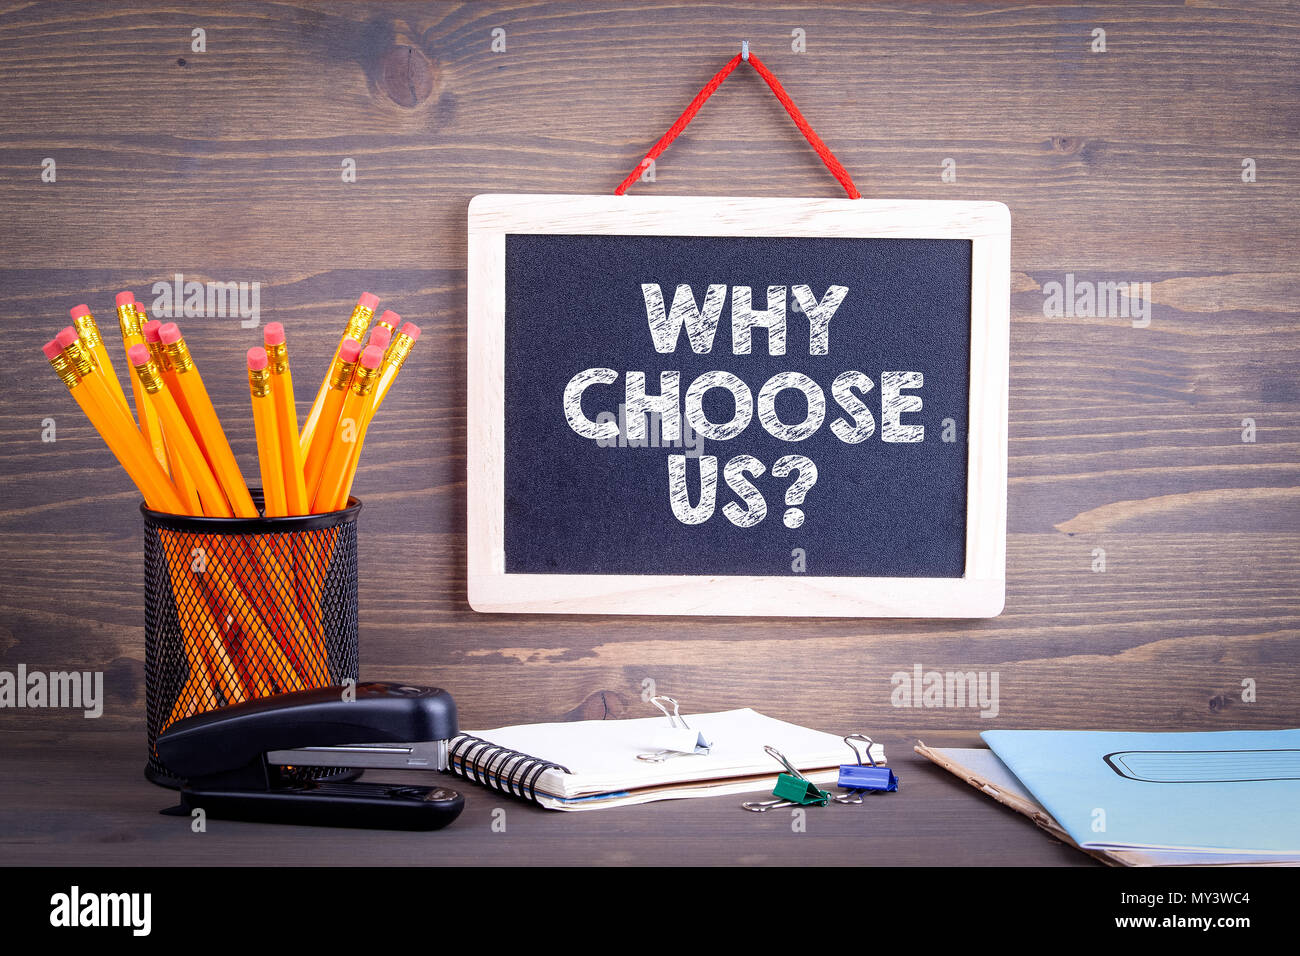 Why choose us. Chalkboard on a wooden background - Stock Image